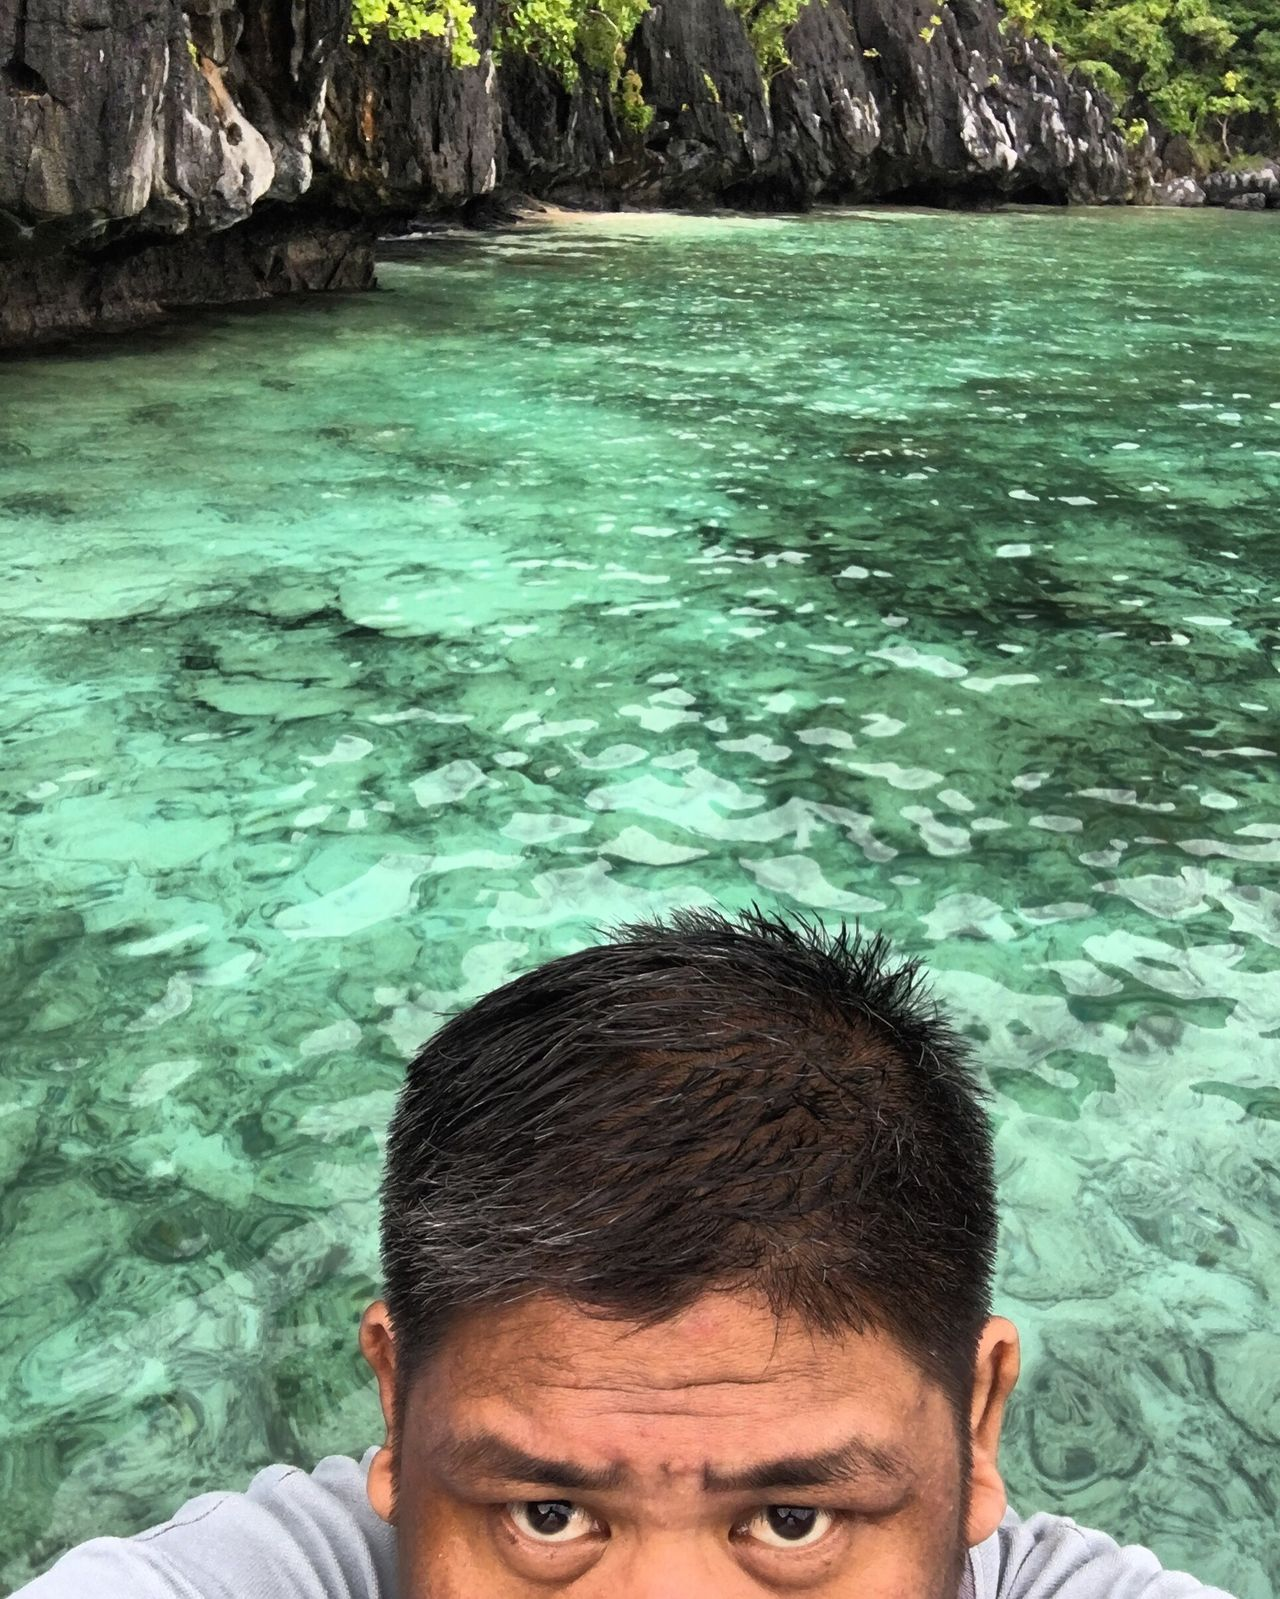 To swim or not to swim Dramatic Angles ElNidoIslands Palawan Islandhopping Vitaminsea Paradise Swimming Elnido EyeEm Nature Lover EyeEmSchoolofPhotography LessonOne